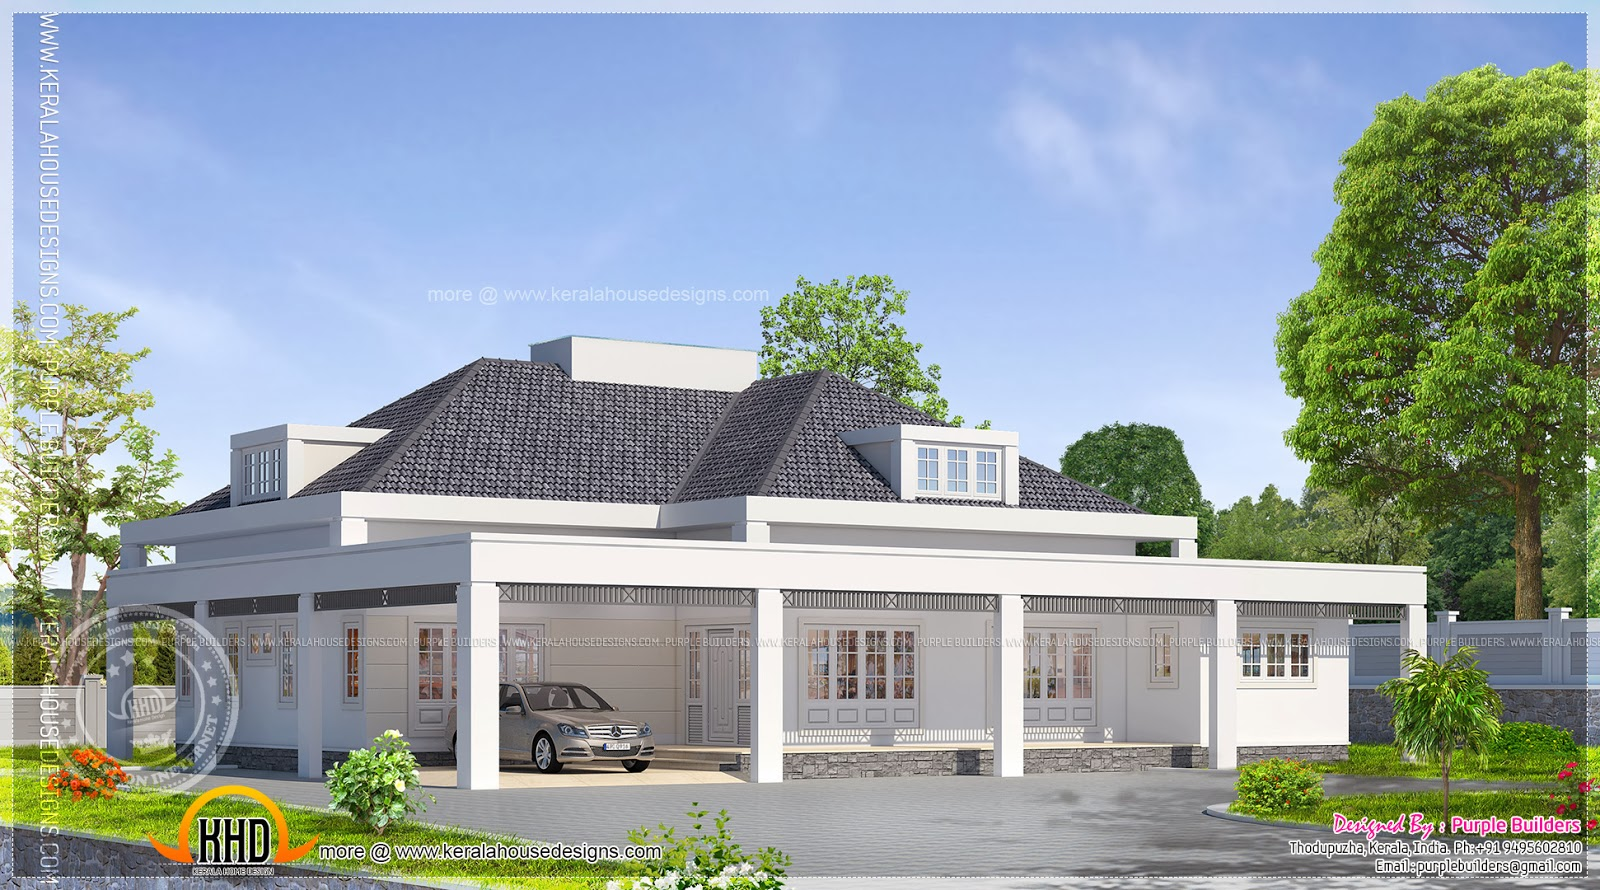 House design european - Single Floor European Style Home